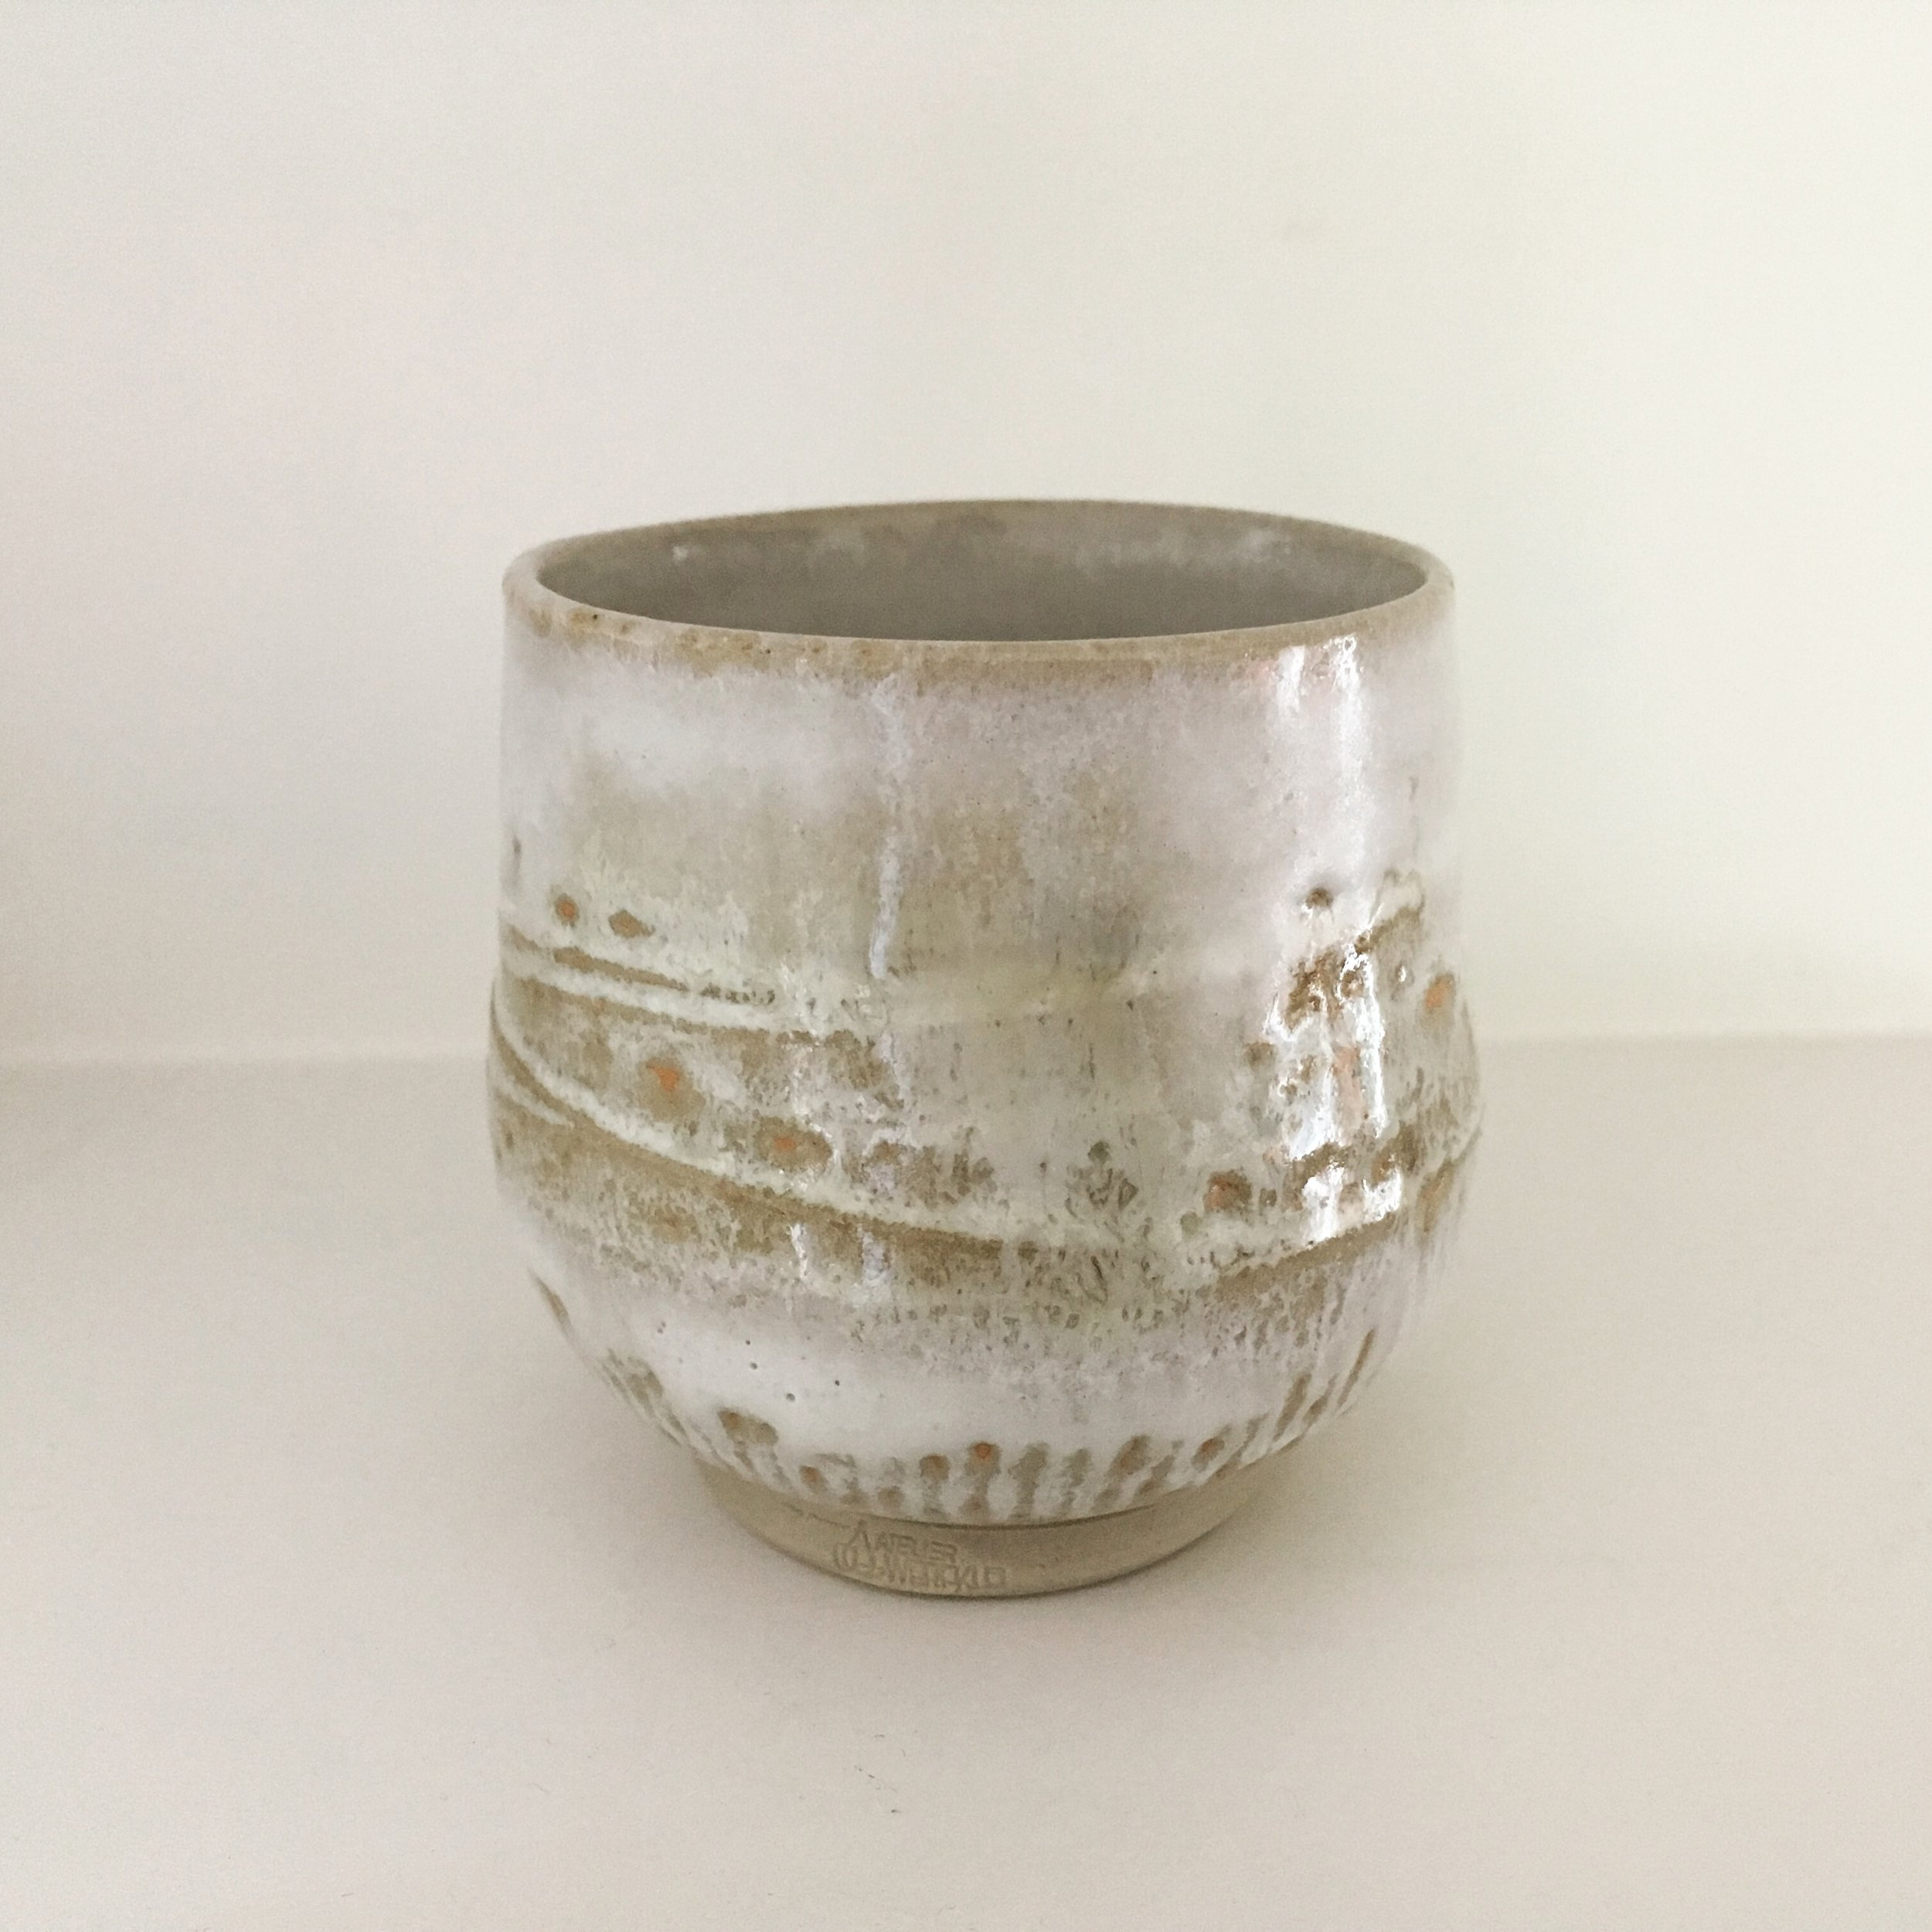 Yunomi   Stoneware cup with nuka ash glaze and decorated with local clay slip (Utrecht, NL)  Ø 7cm - Sold